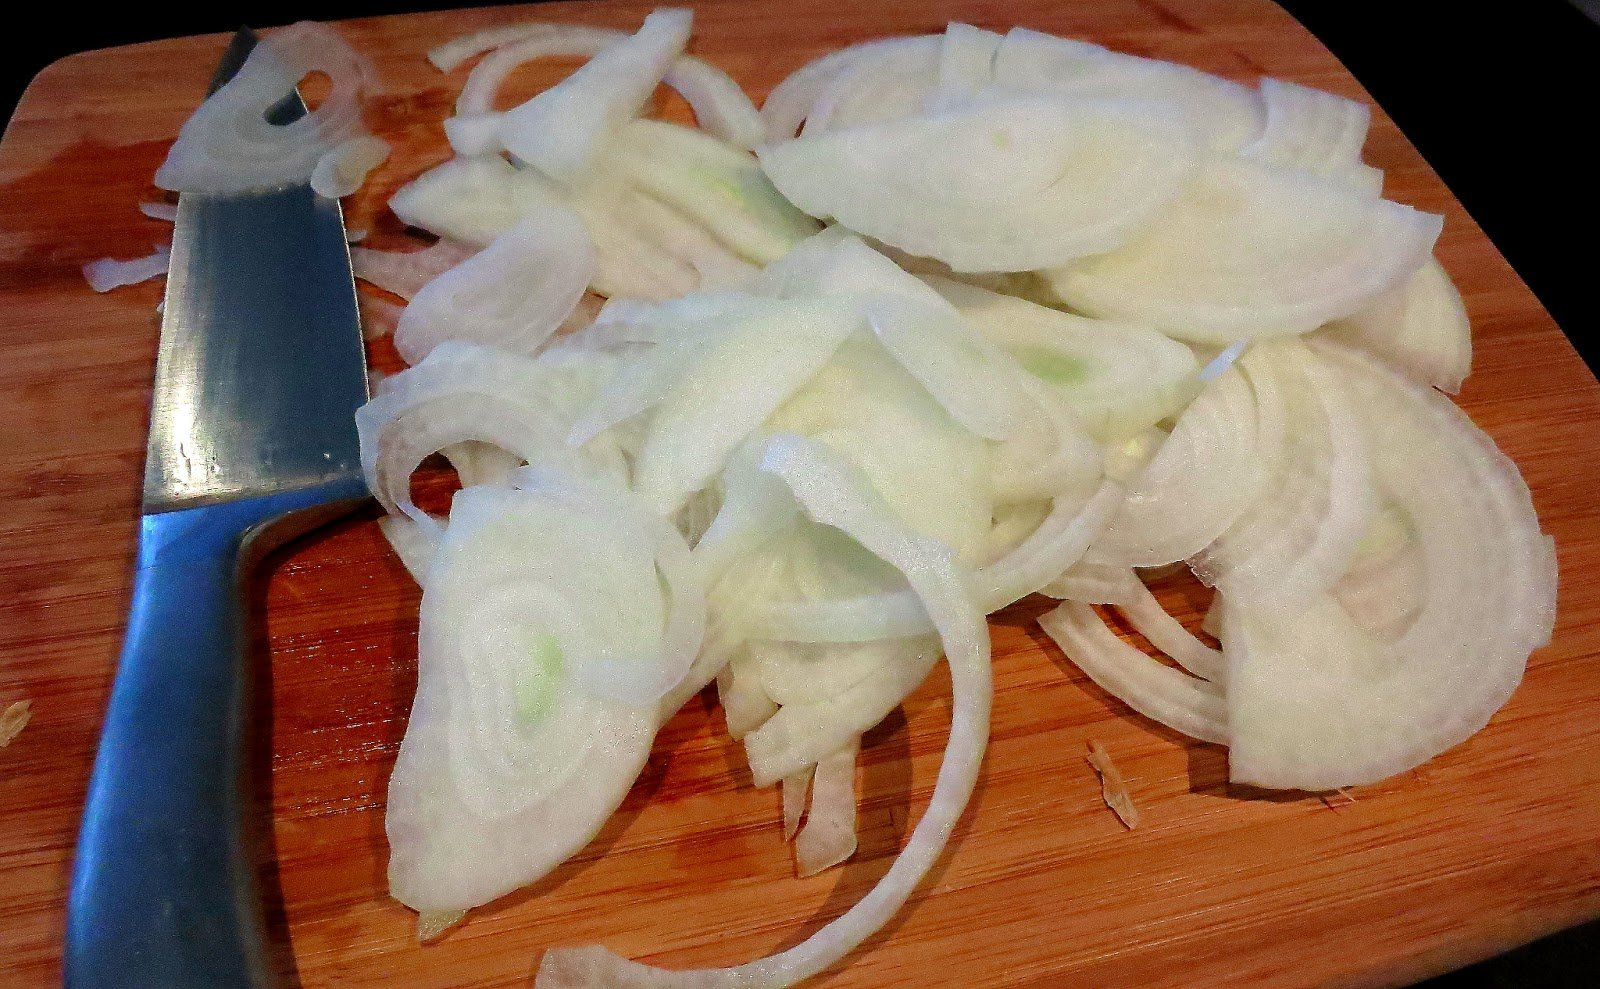 A close up of sliced onions.